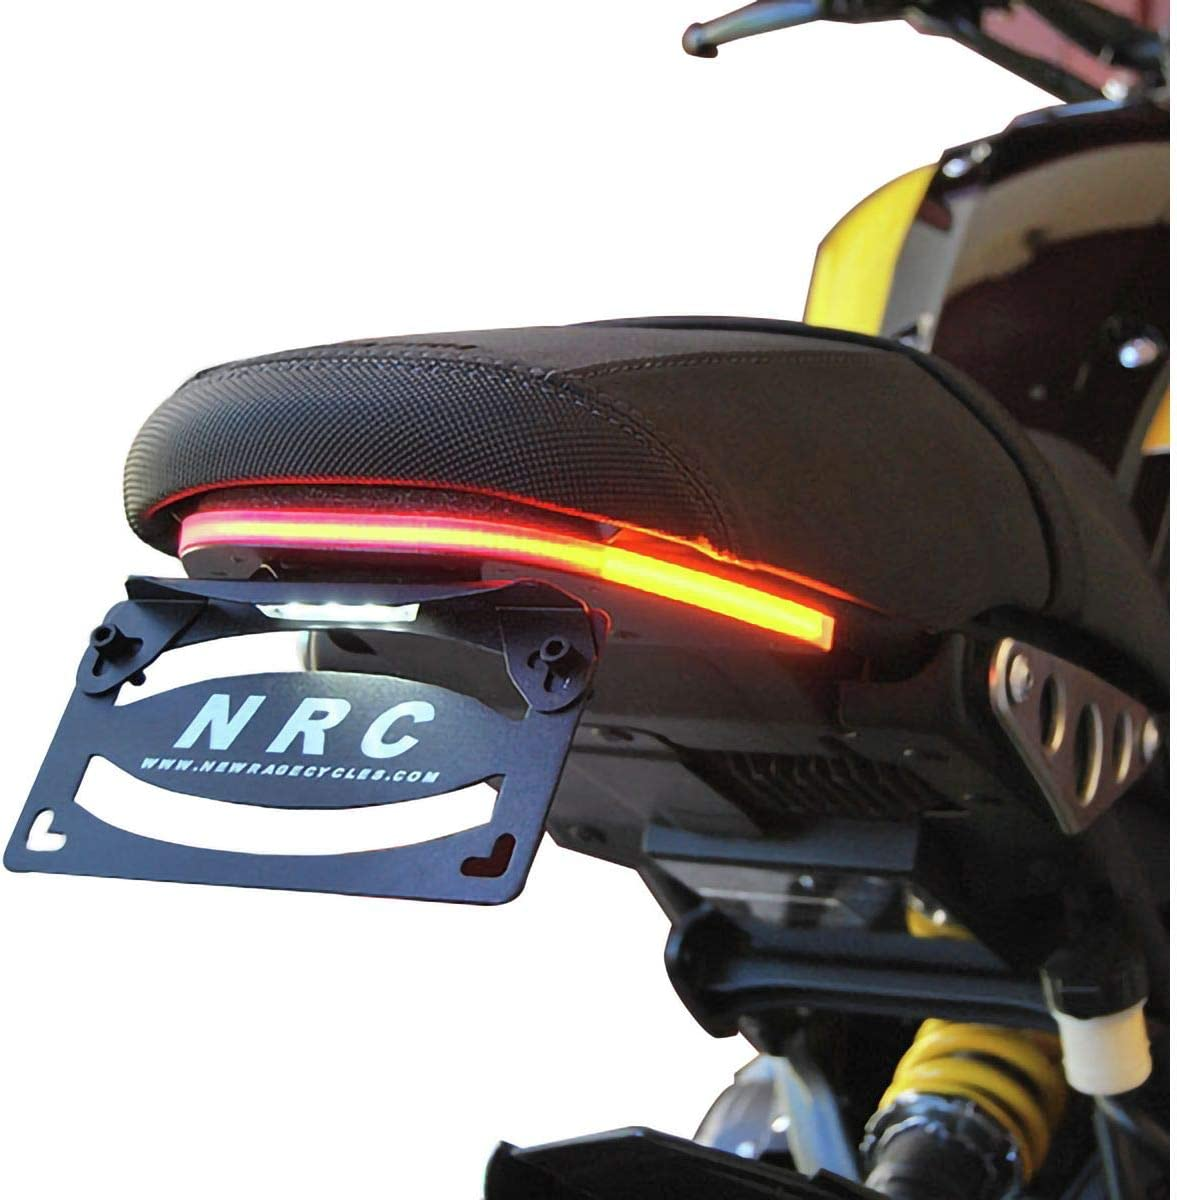 Daily bargain sale Yamaha XSR 900 Fender Eliminator - Max 66% OFF Standard Rage New Cycles